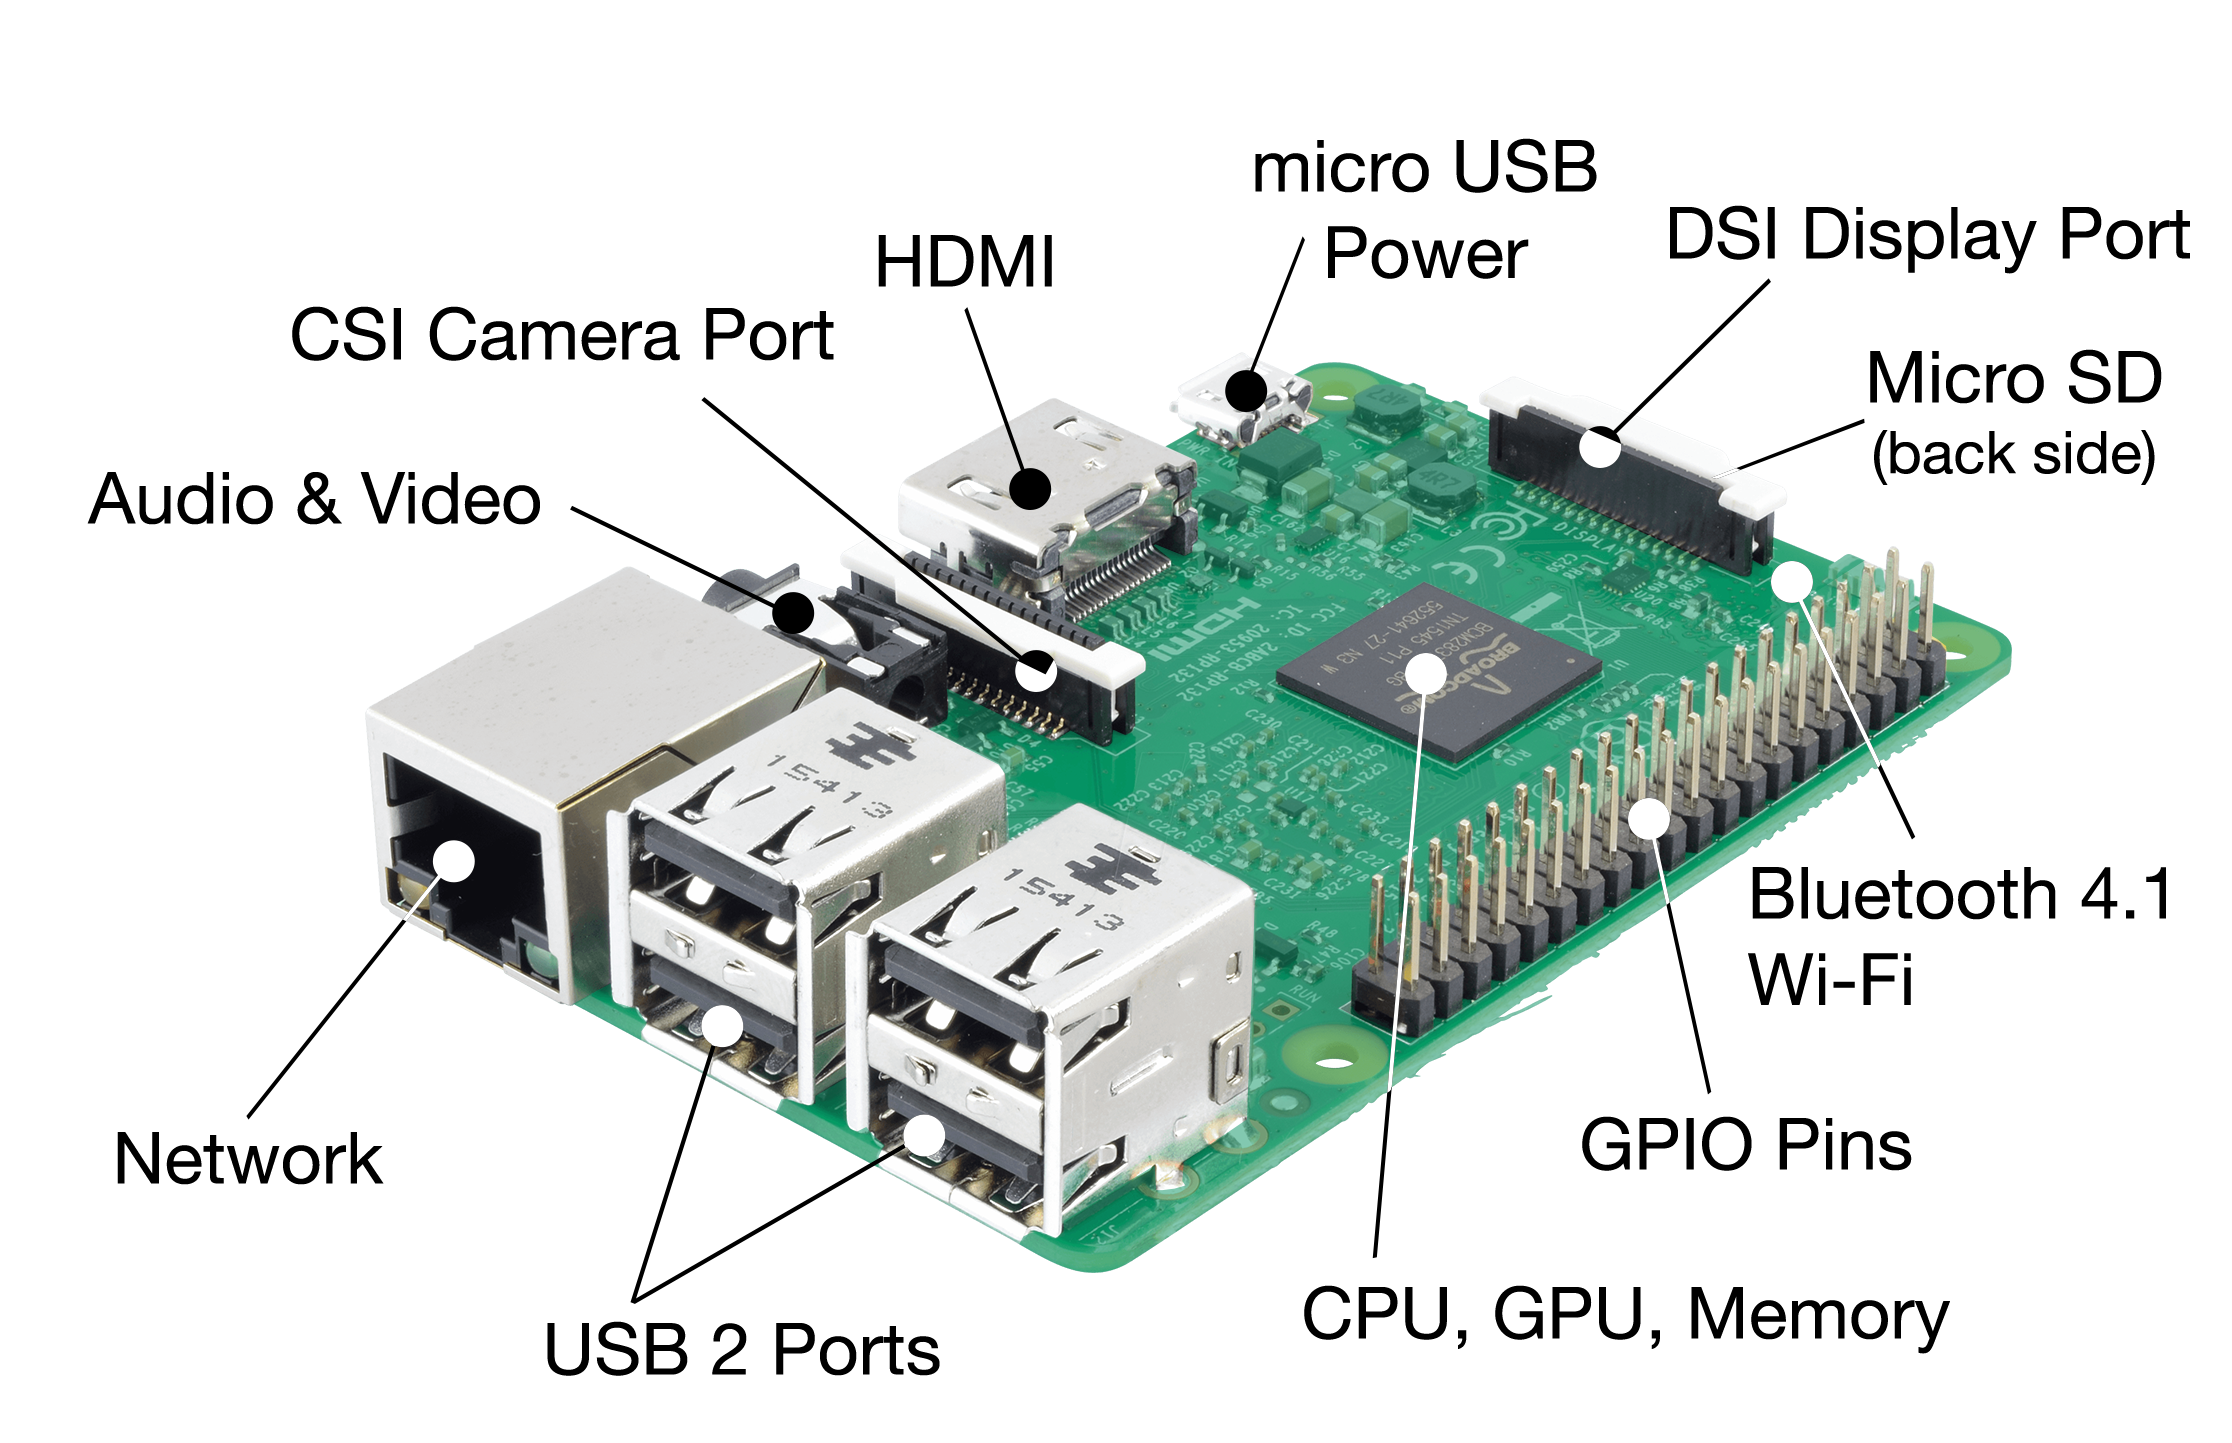 What you need to open the PI in 2018 80